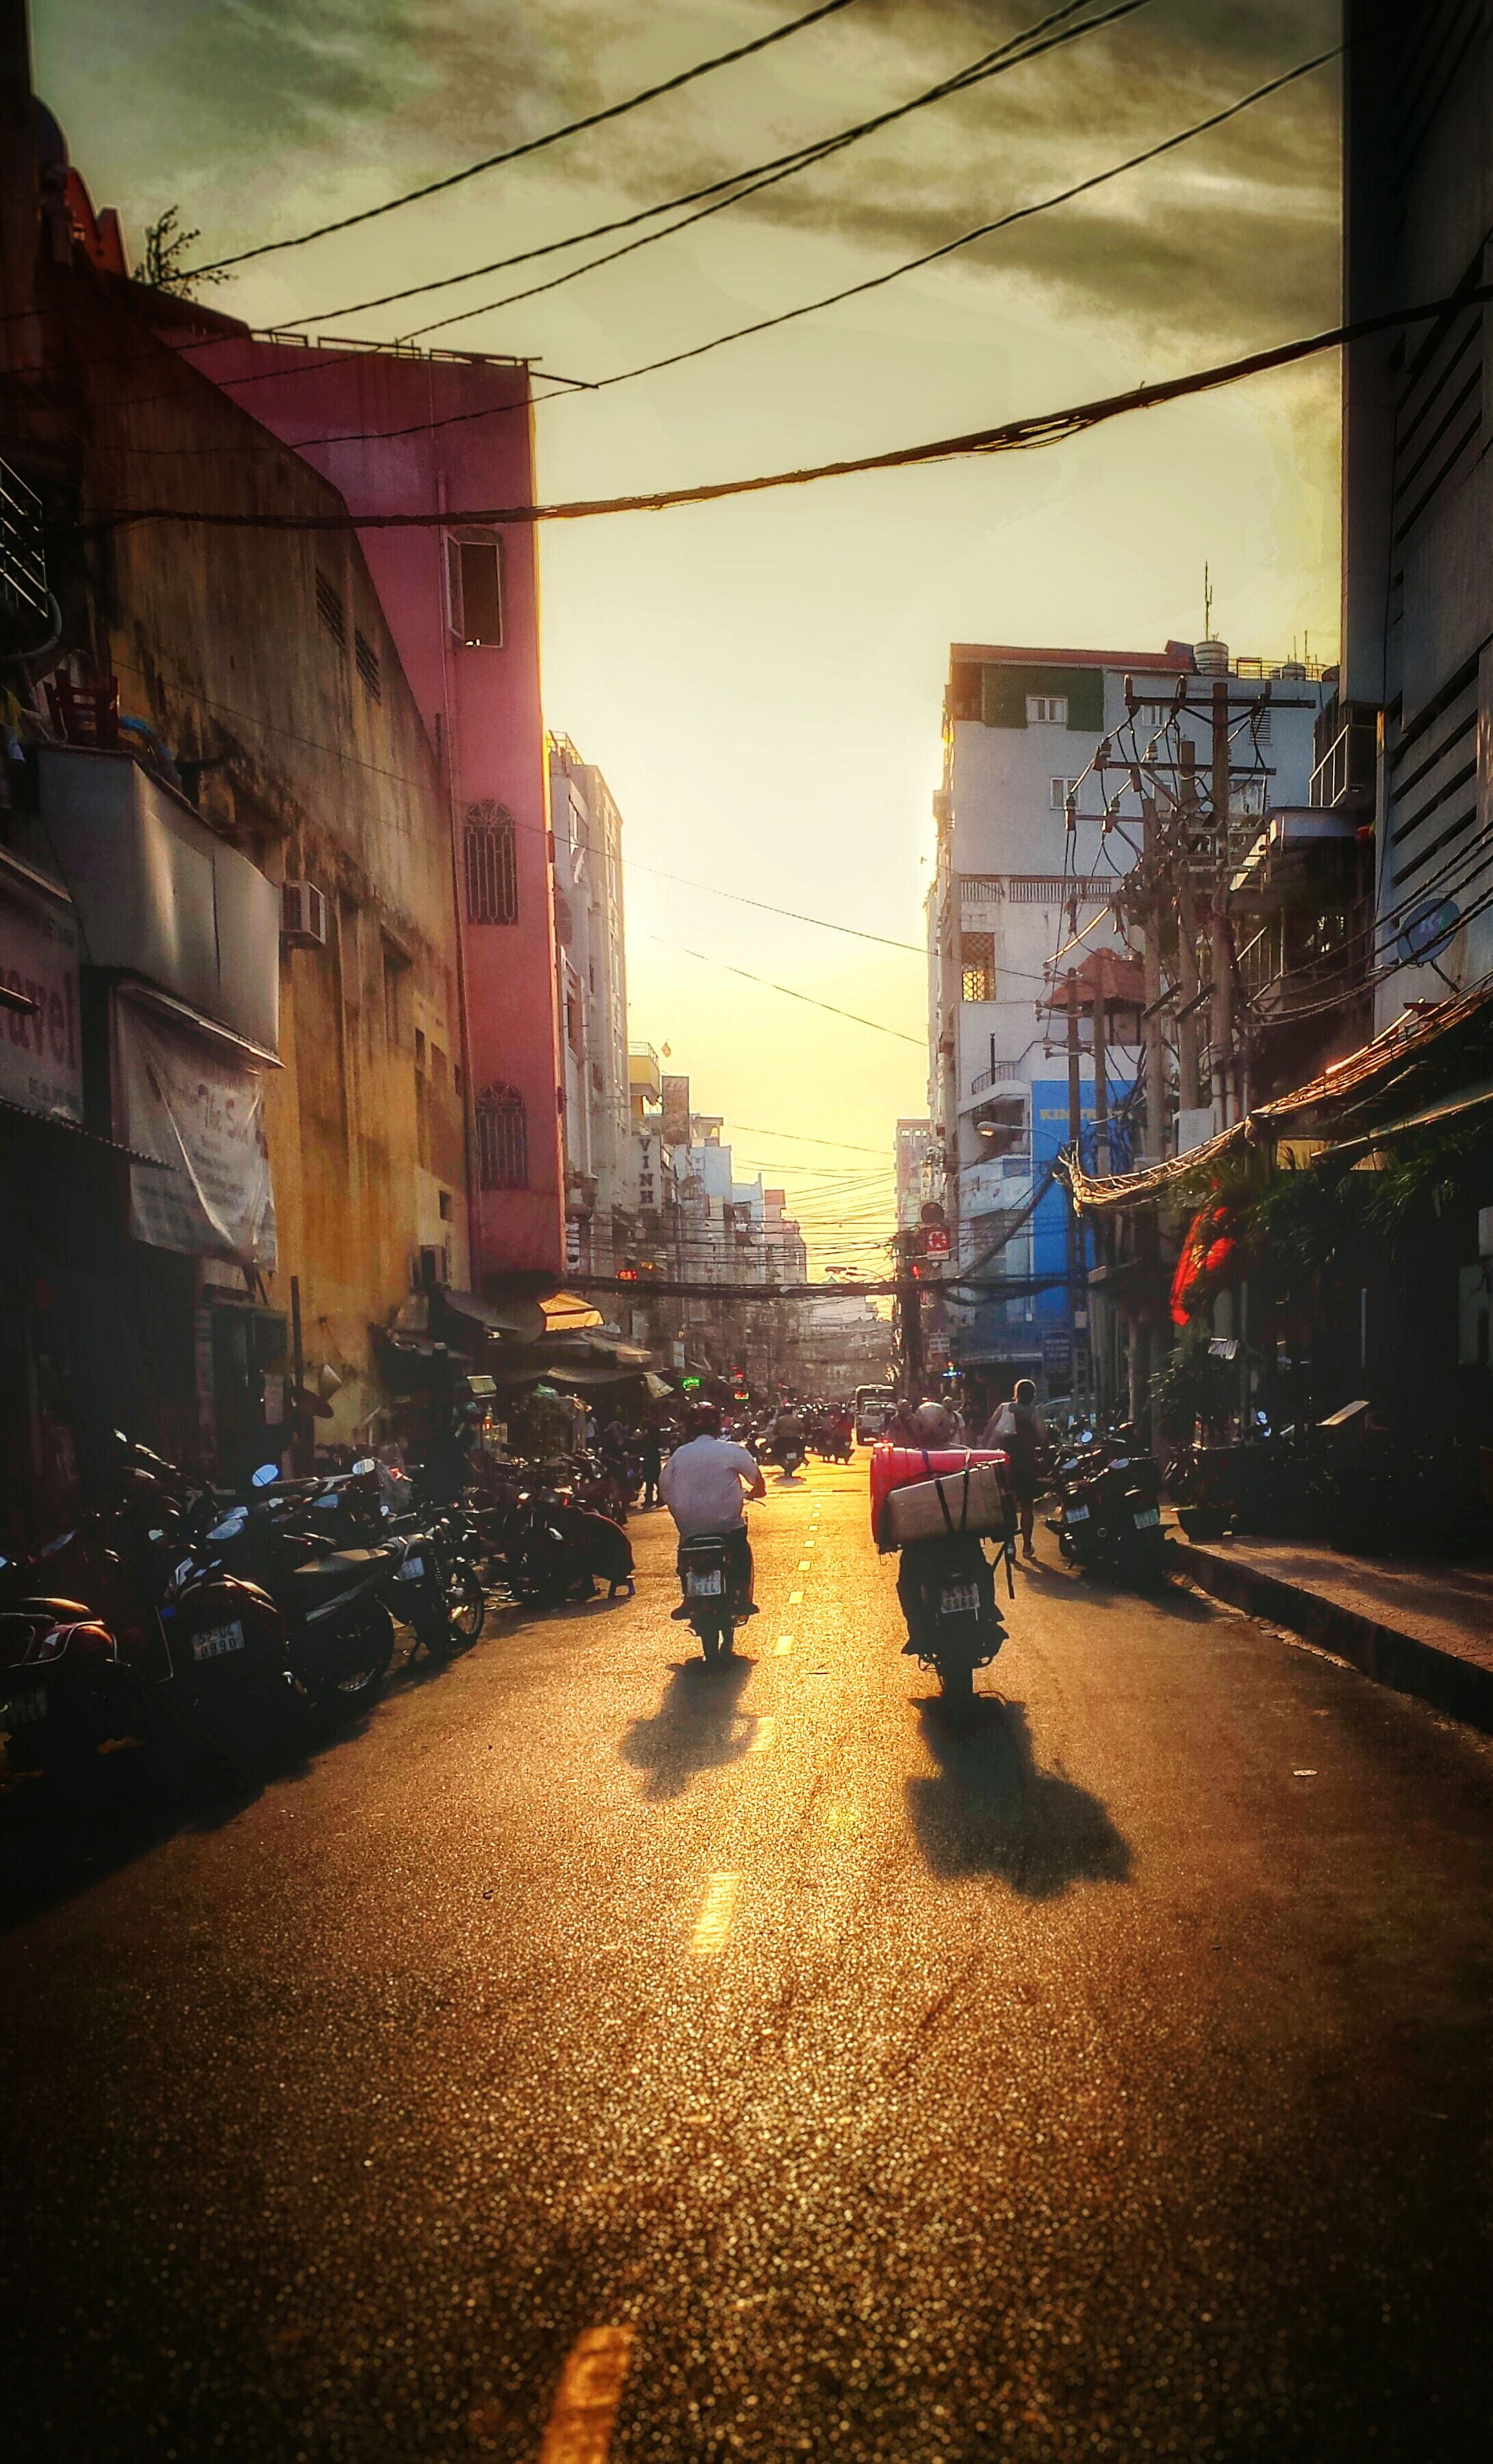 building exterior, transportation, architecture, street, car, built structure, city, land vehicle, mode of transport, city street, road, city life, sky, incidental people, building, traffic, residential structure, residential building, sunset, outdoors